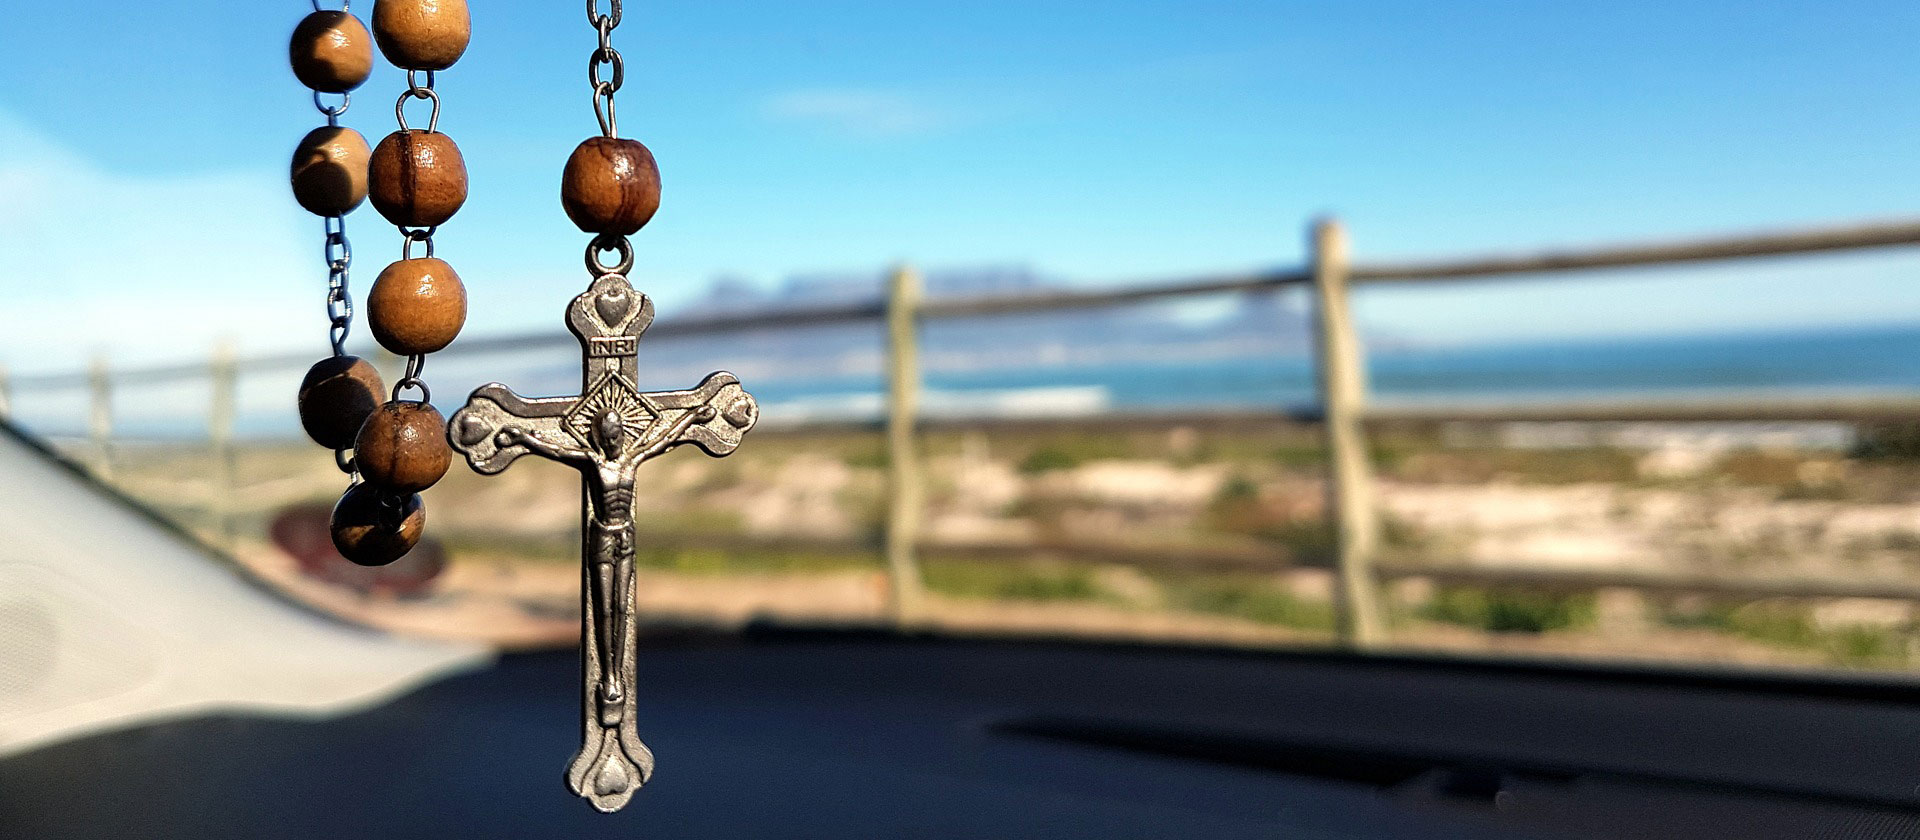 Rosary hanging in car with ocean view in background